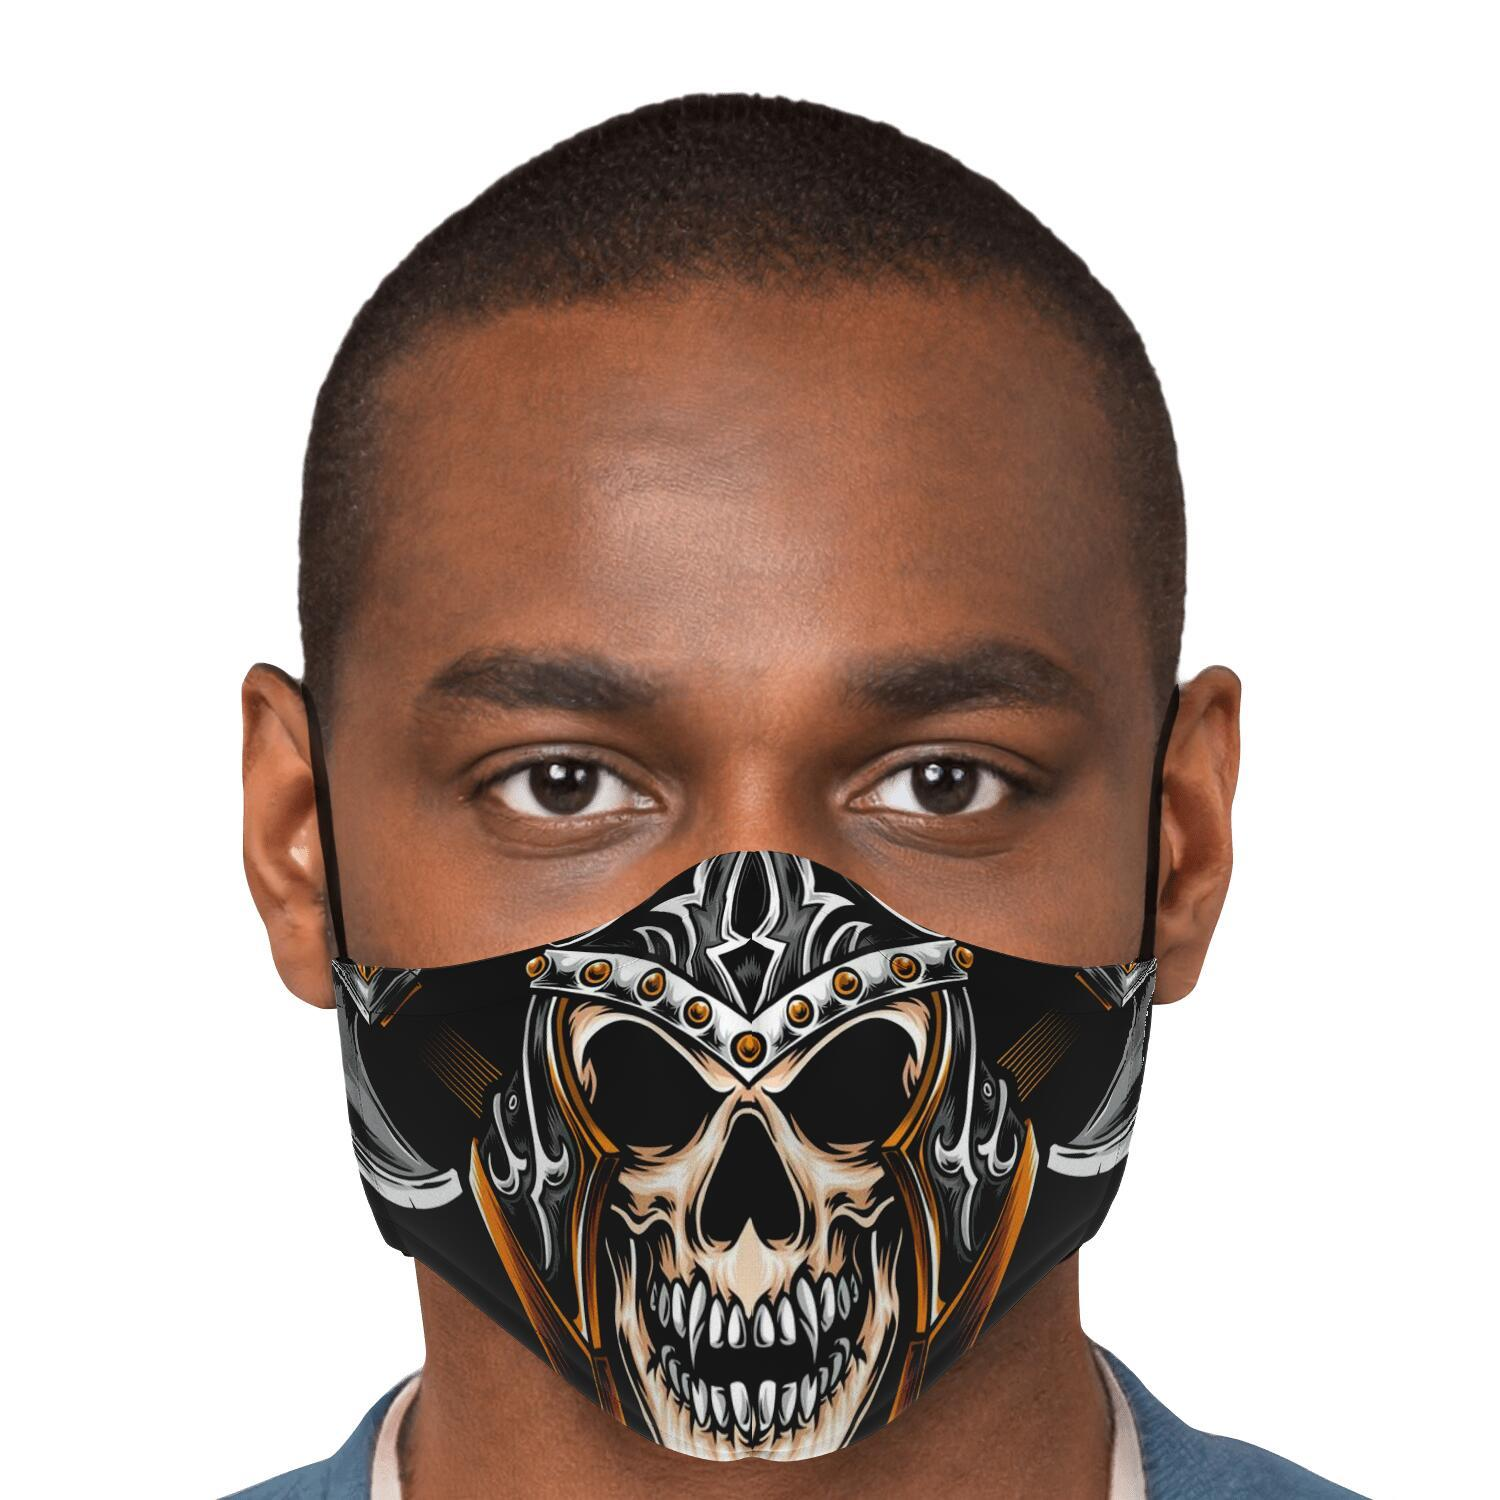 Norse Warrior Face Mask Cover